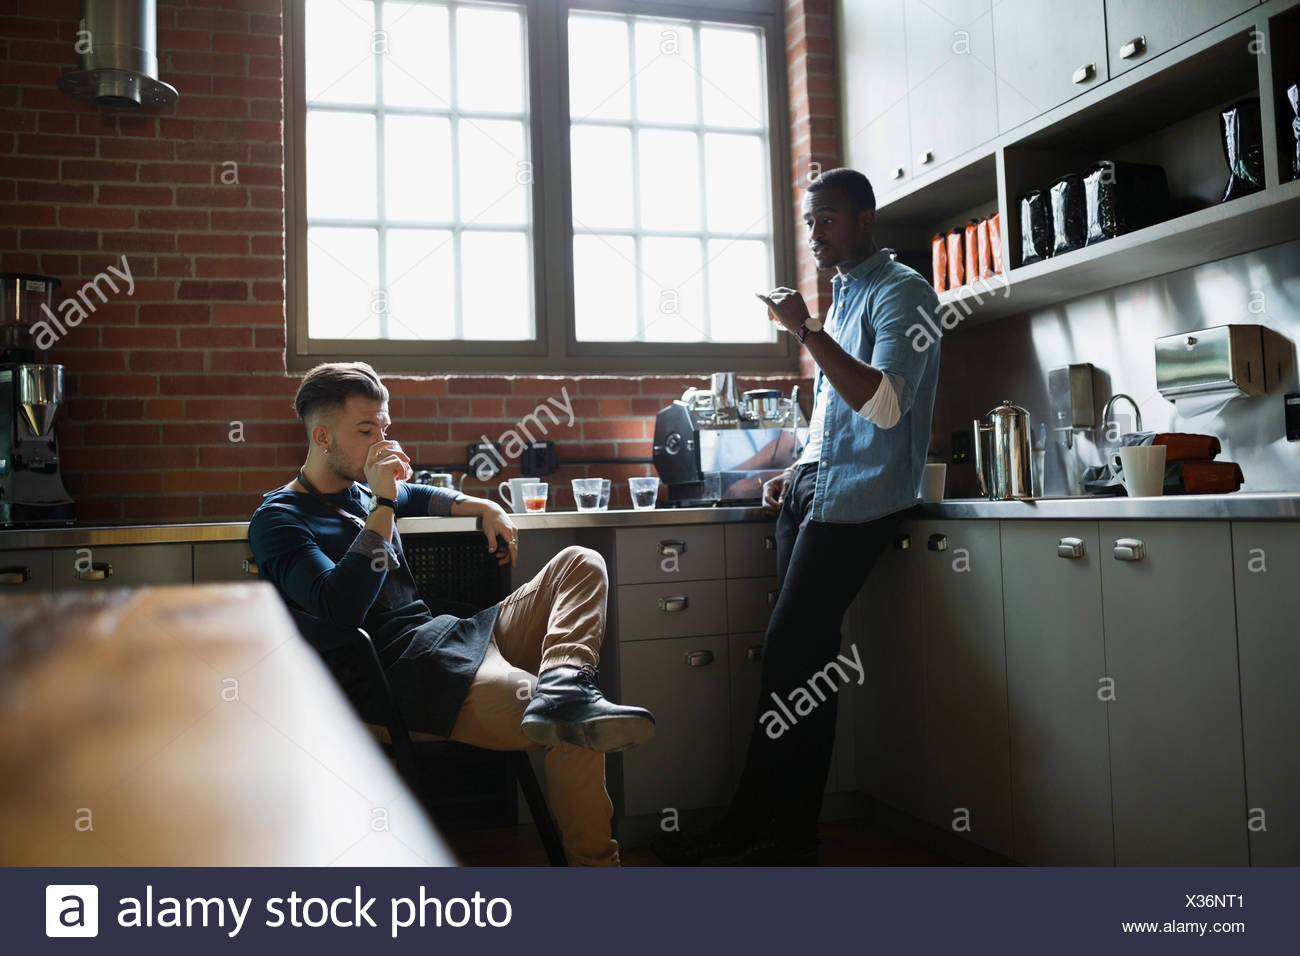 Entrepreneurial coffee roasters tasting coffee in kitchen - Stock Image